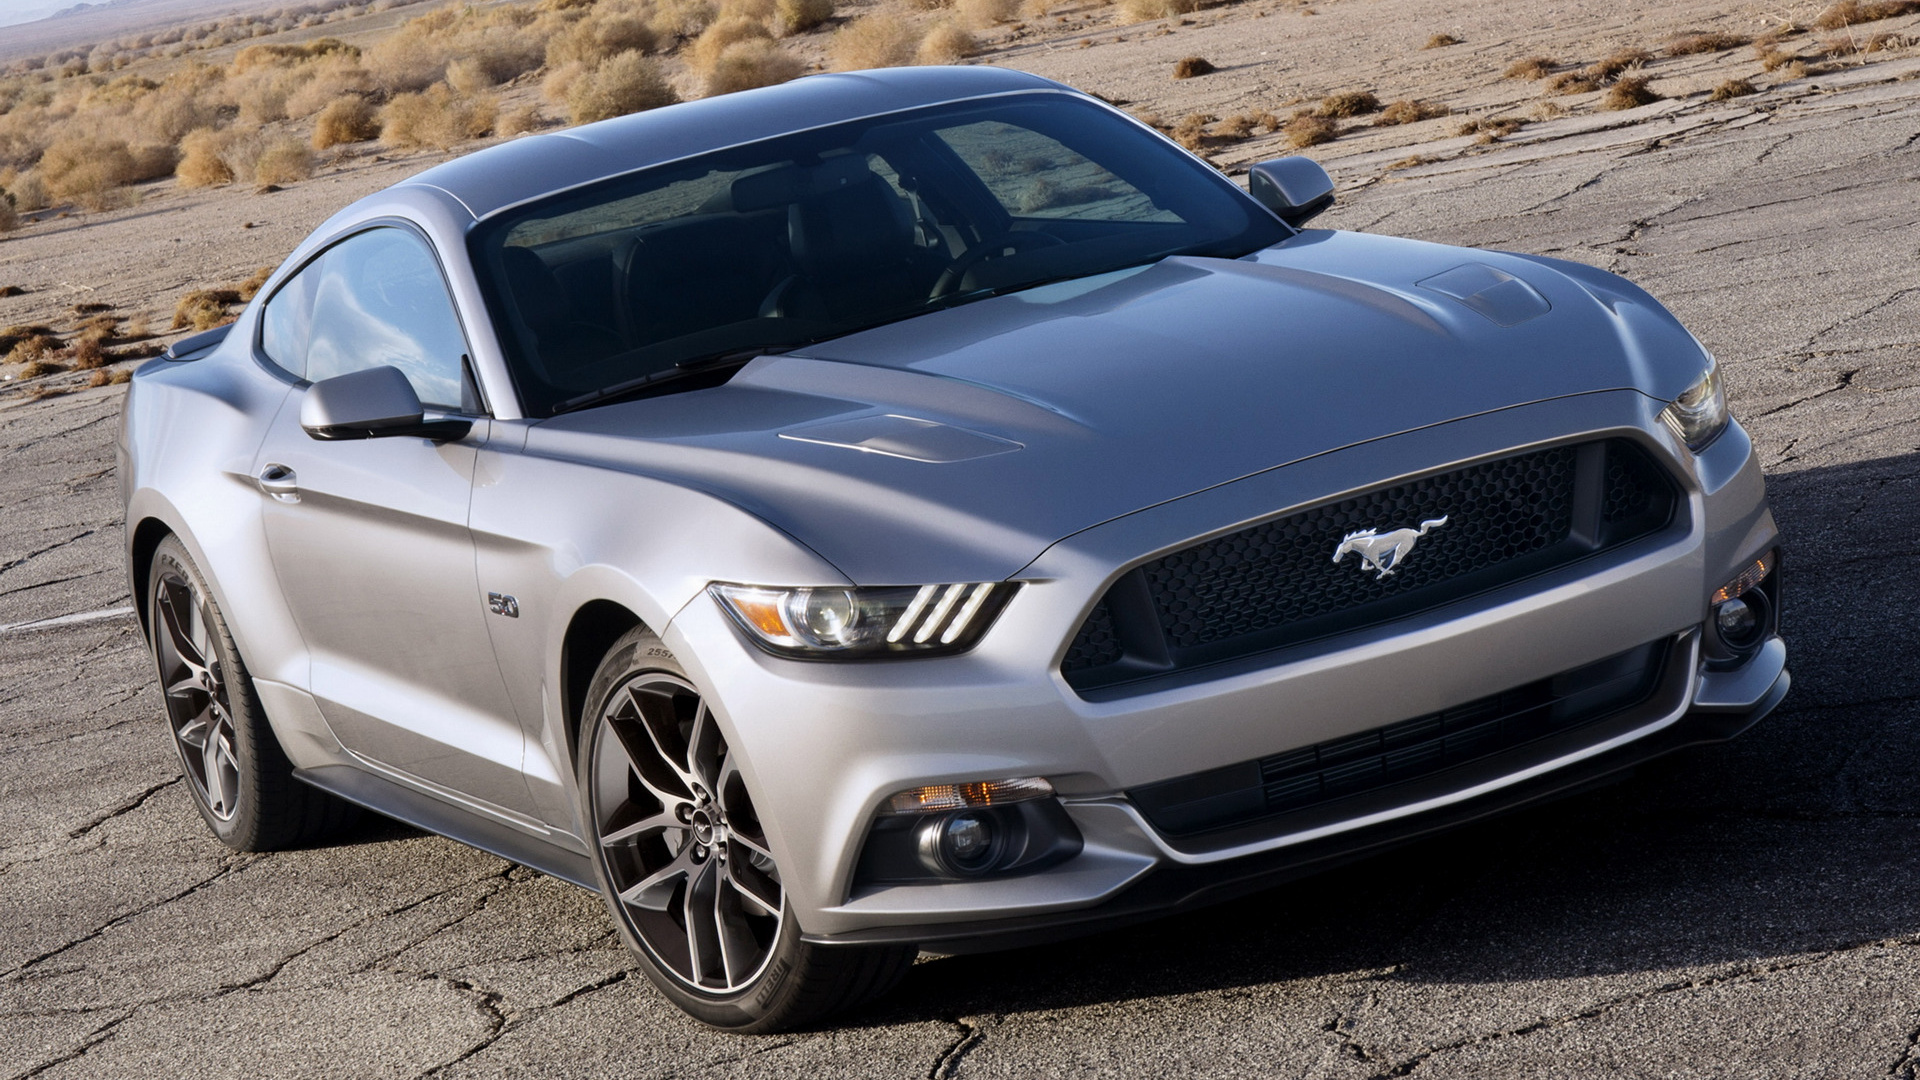 Ford Mustang GT Fastback 2015 Wallpapers and HD Images 1920x1080